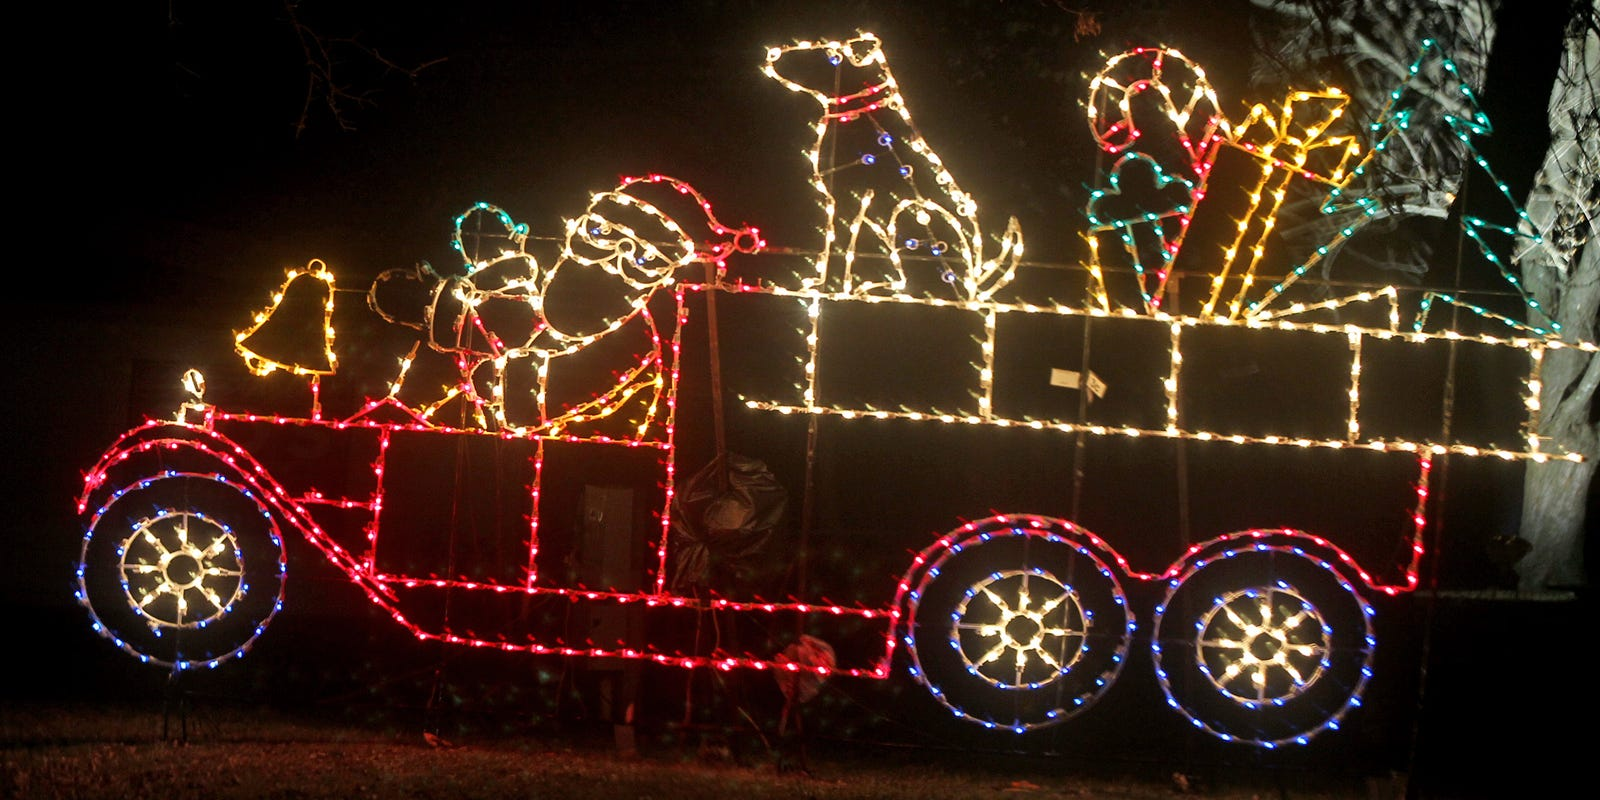 Where to catch Christmas lights in and around Des Moines